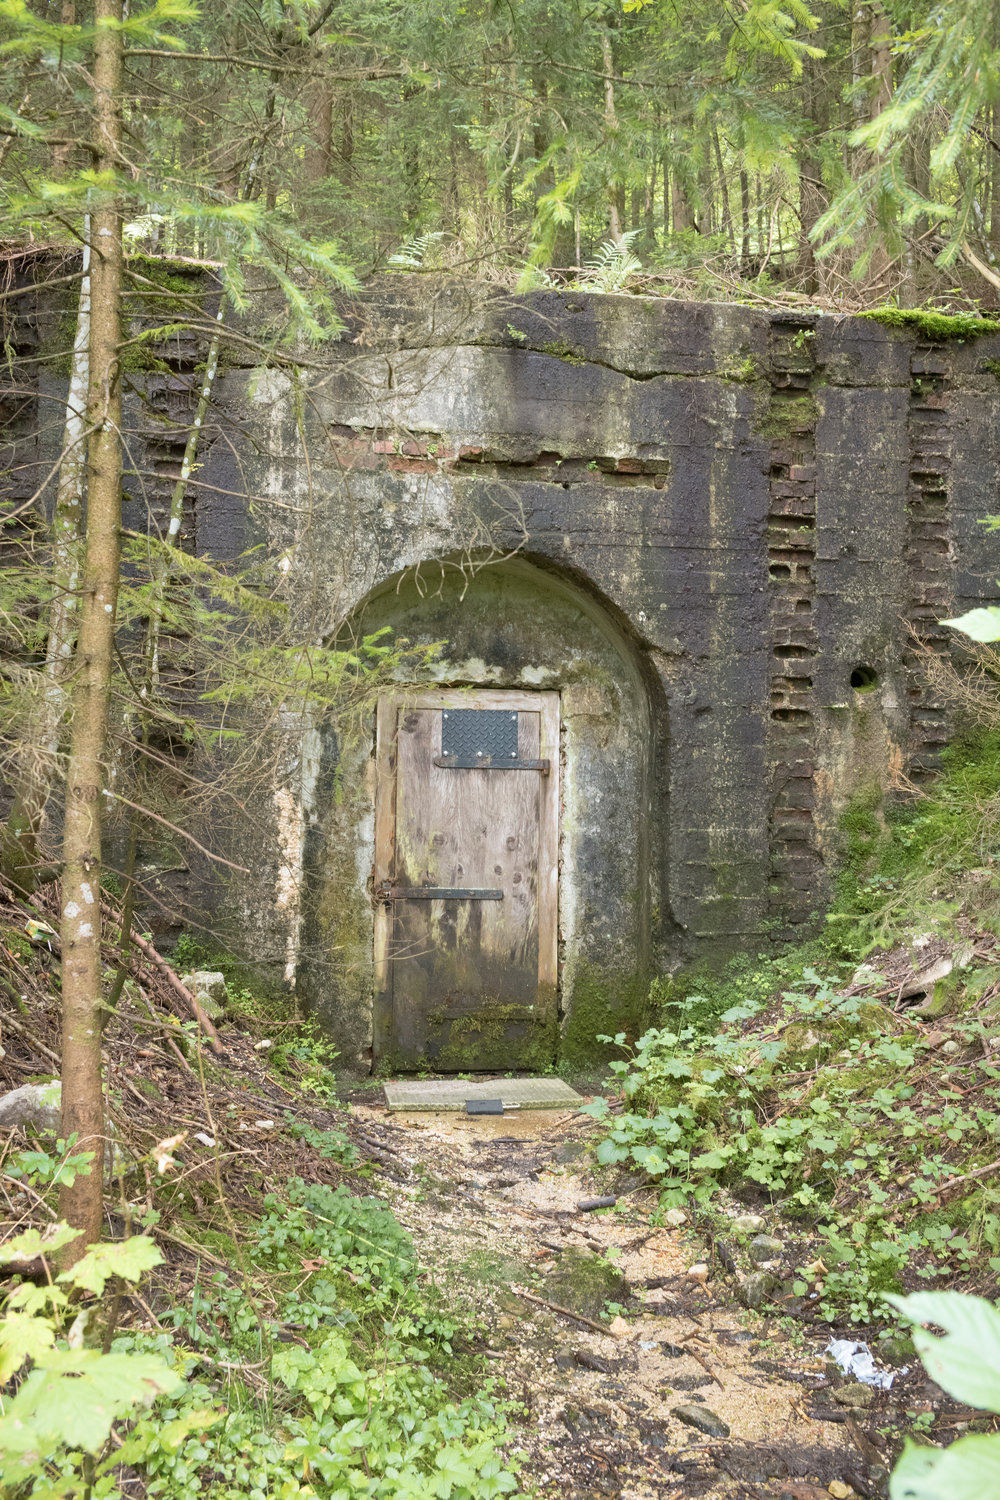 Obersalzburg, Germany, 2017  When we see something old, we can recognise it is a vestige of a previous time, but it's not alway clear what it tells us. A door leading into the side of a hill, lost in the trees. Its massive and substantial construction betray its importance, yet now, hidden away, its significance is gone. We might find out more about this place, but there will always be gaps to be filled by speculation and imagination.